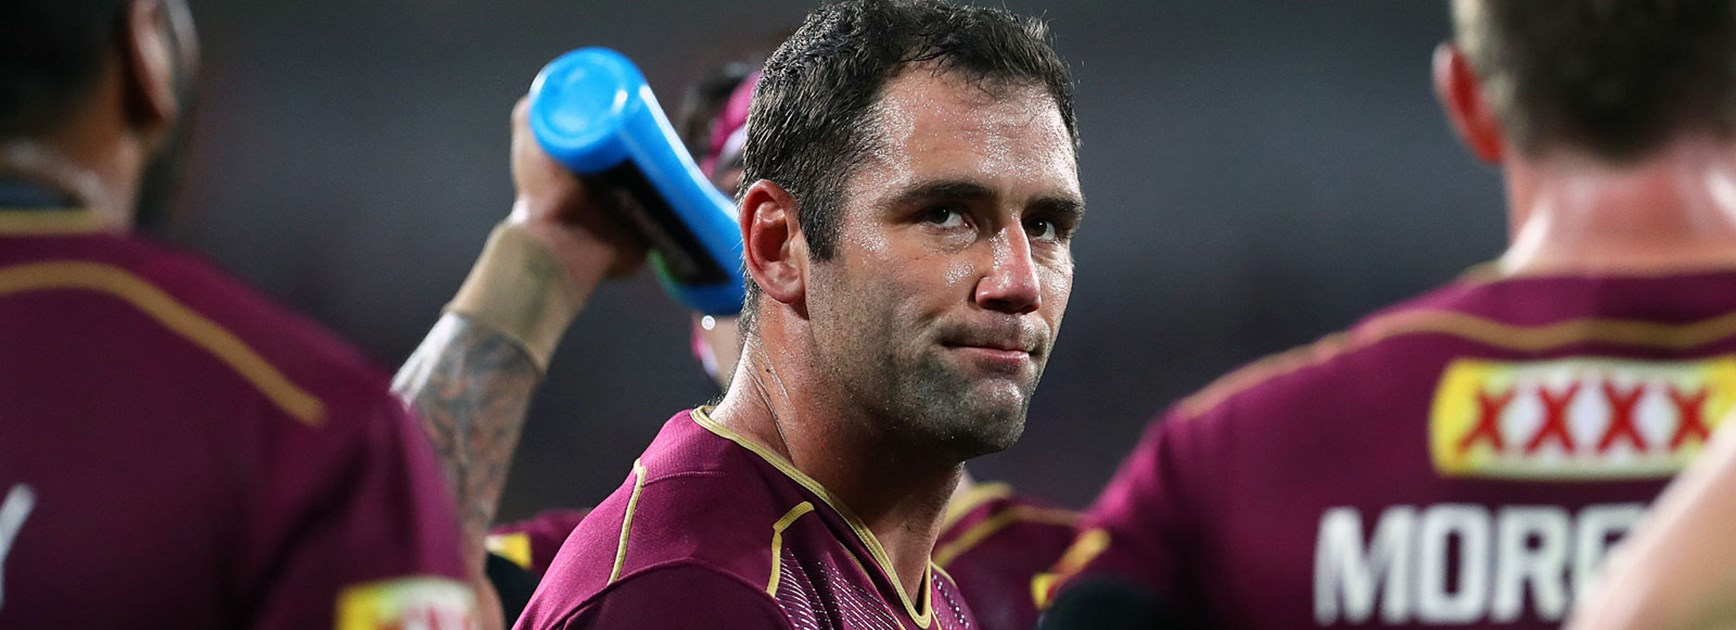 NSW captain Paul Gallen believes Queensland counterpart Cameron Smith is the greatest player he's ever seen.